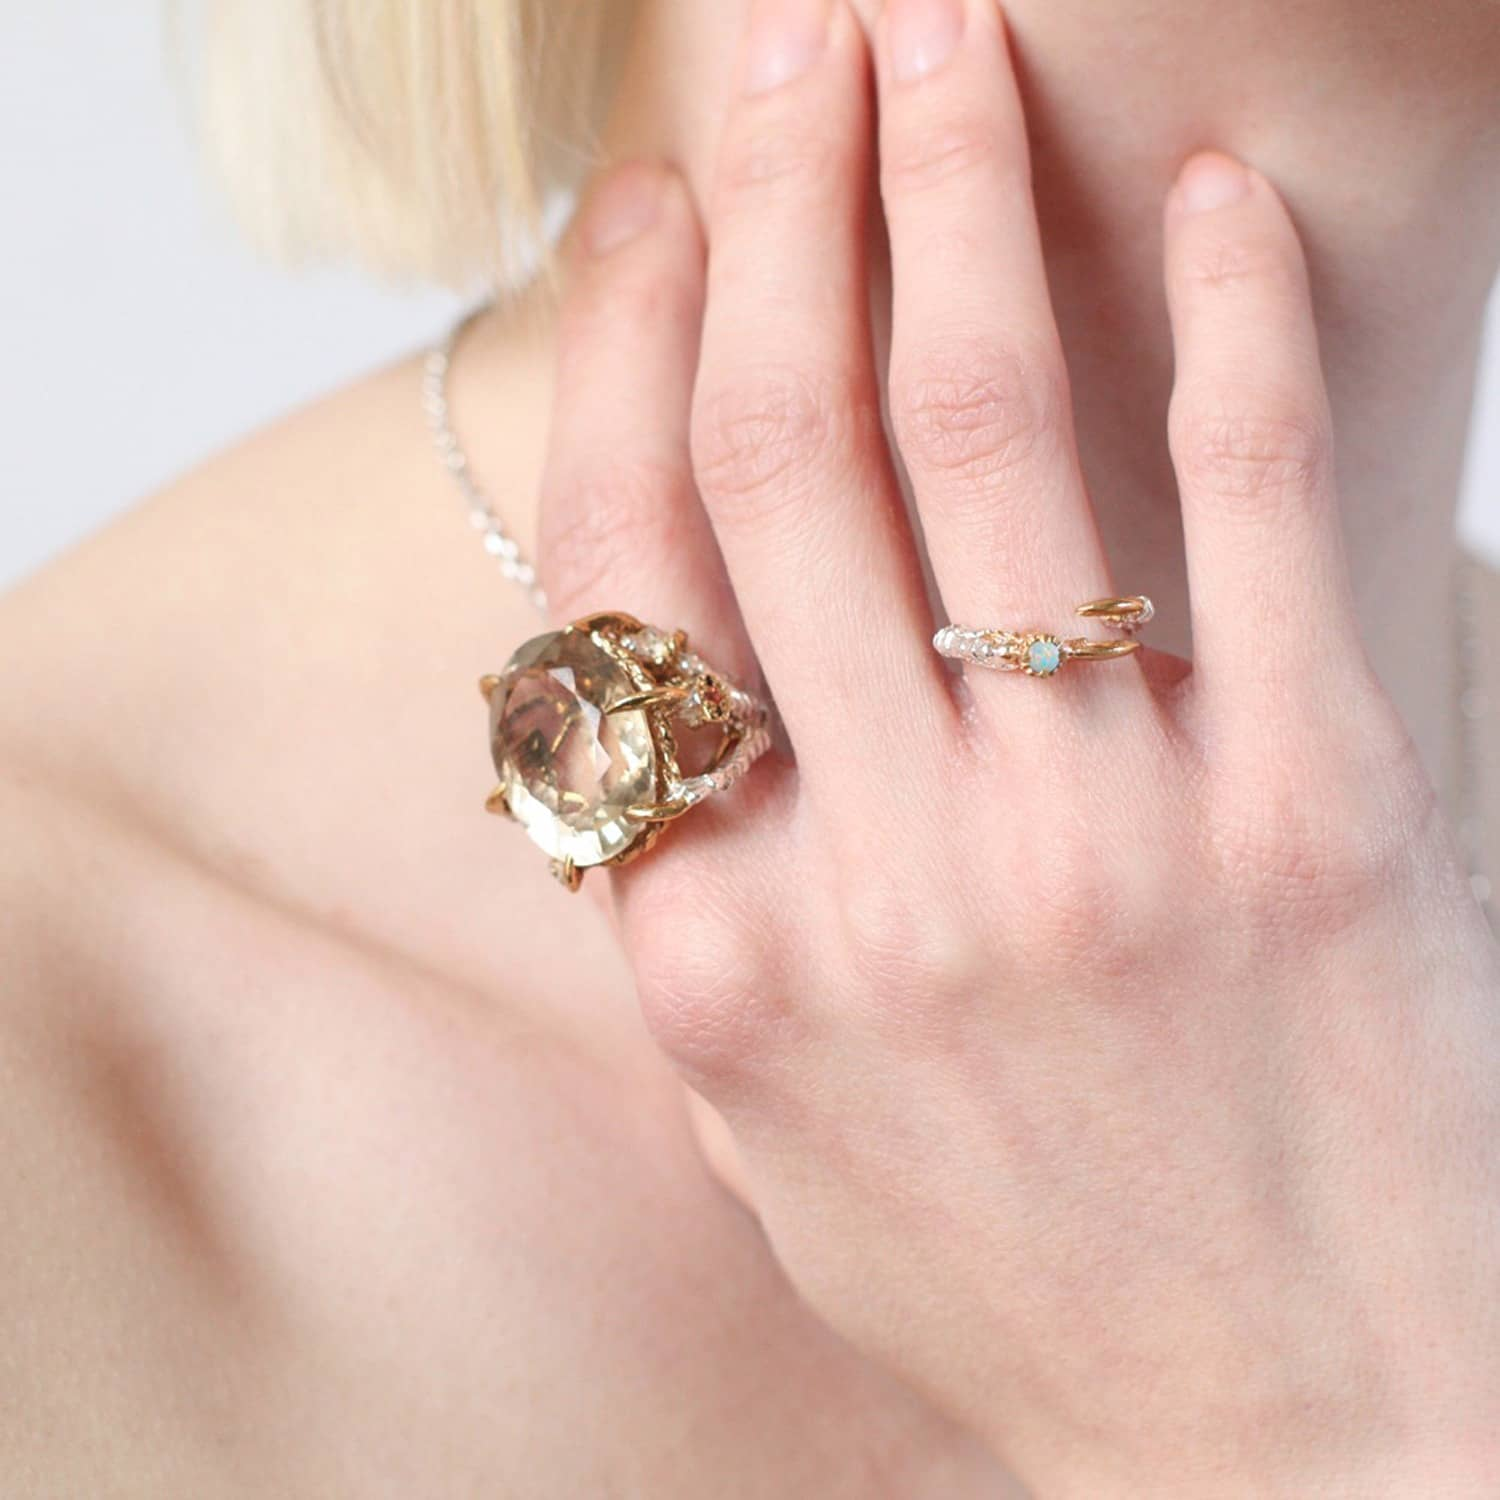 Single Claw with an Opal Mini Ring | Tessa Metcalfe | Wolf & Badger